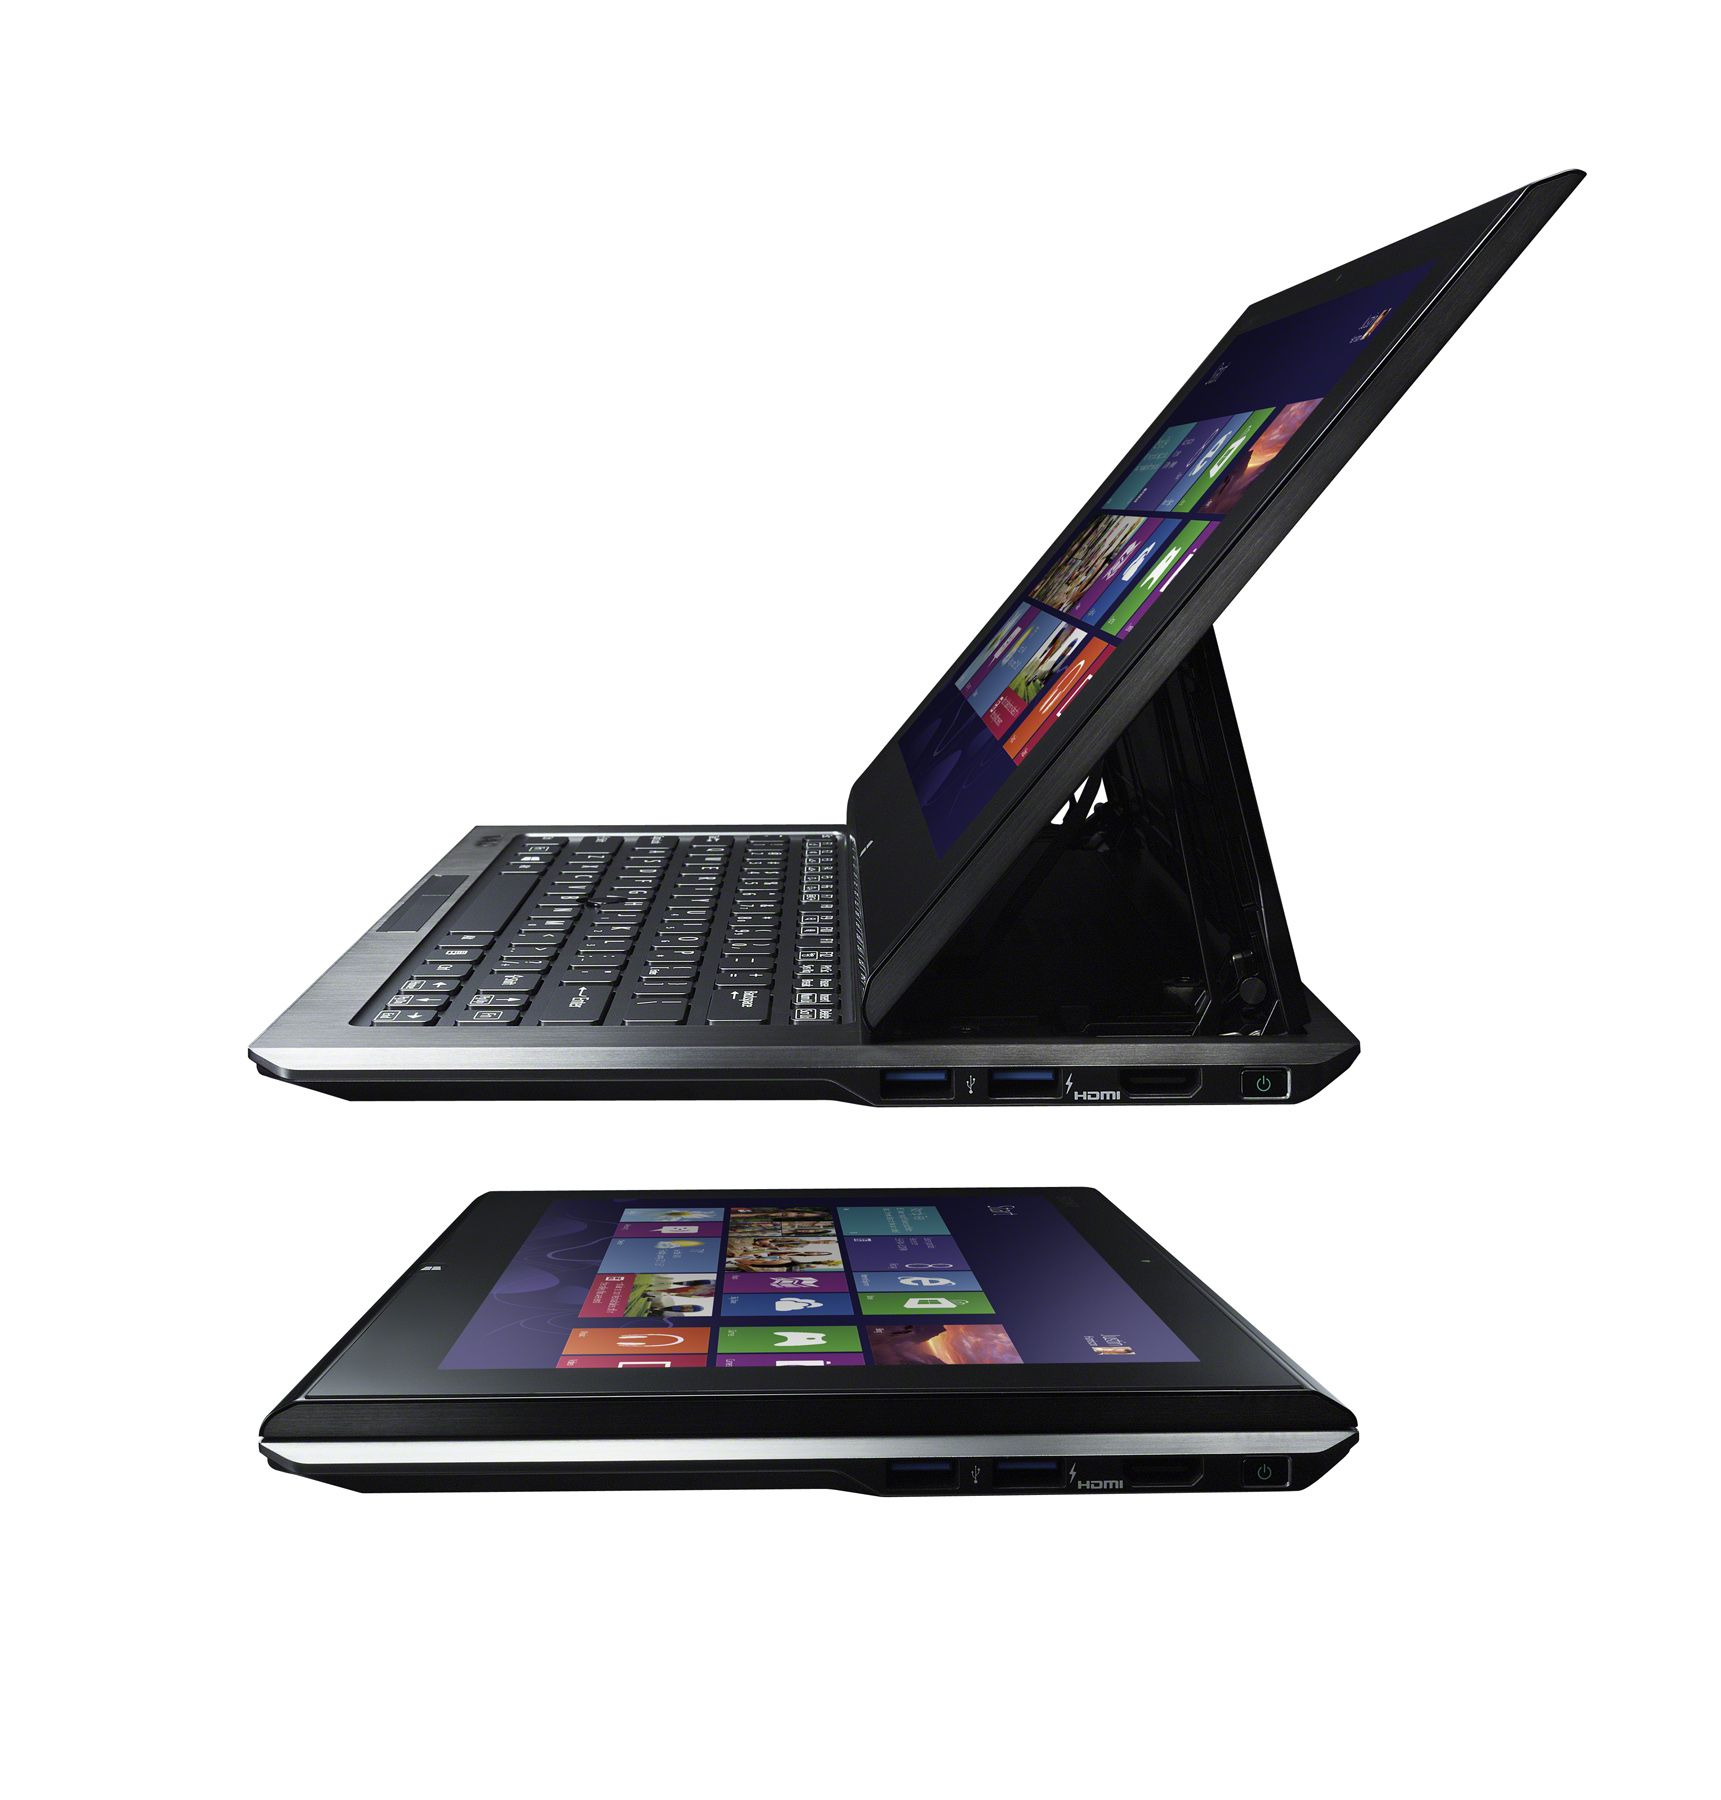 Sony vaio t13 review 2 alphr - New Sony Vaio Part Tablet Part Ultrabook All Around Awesome